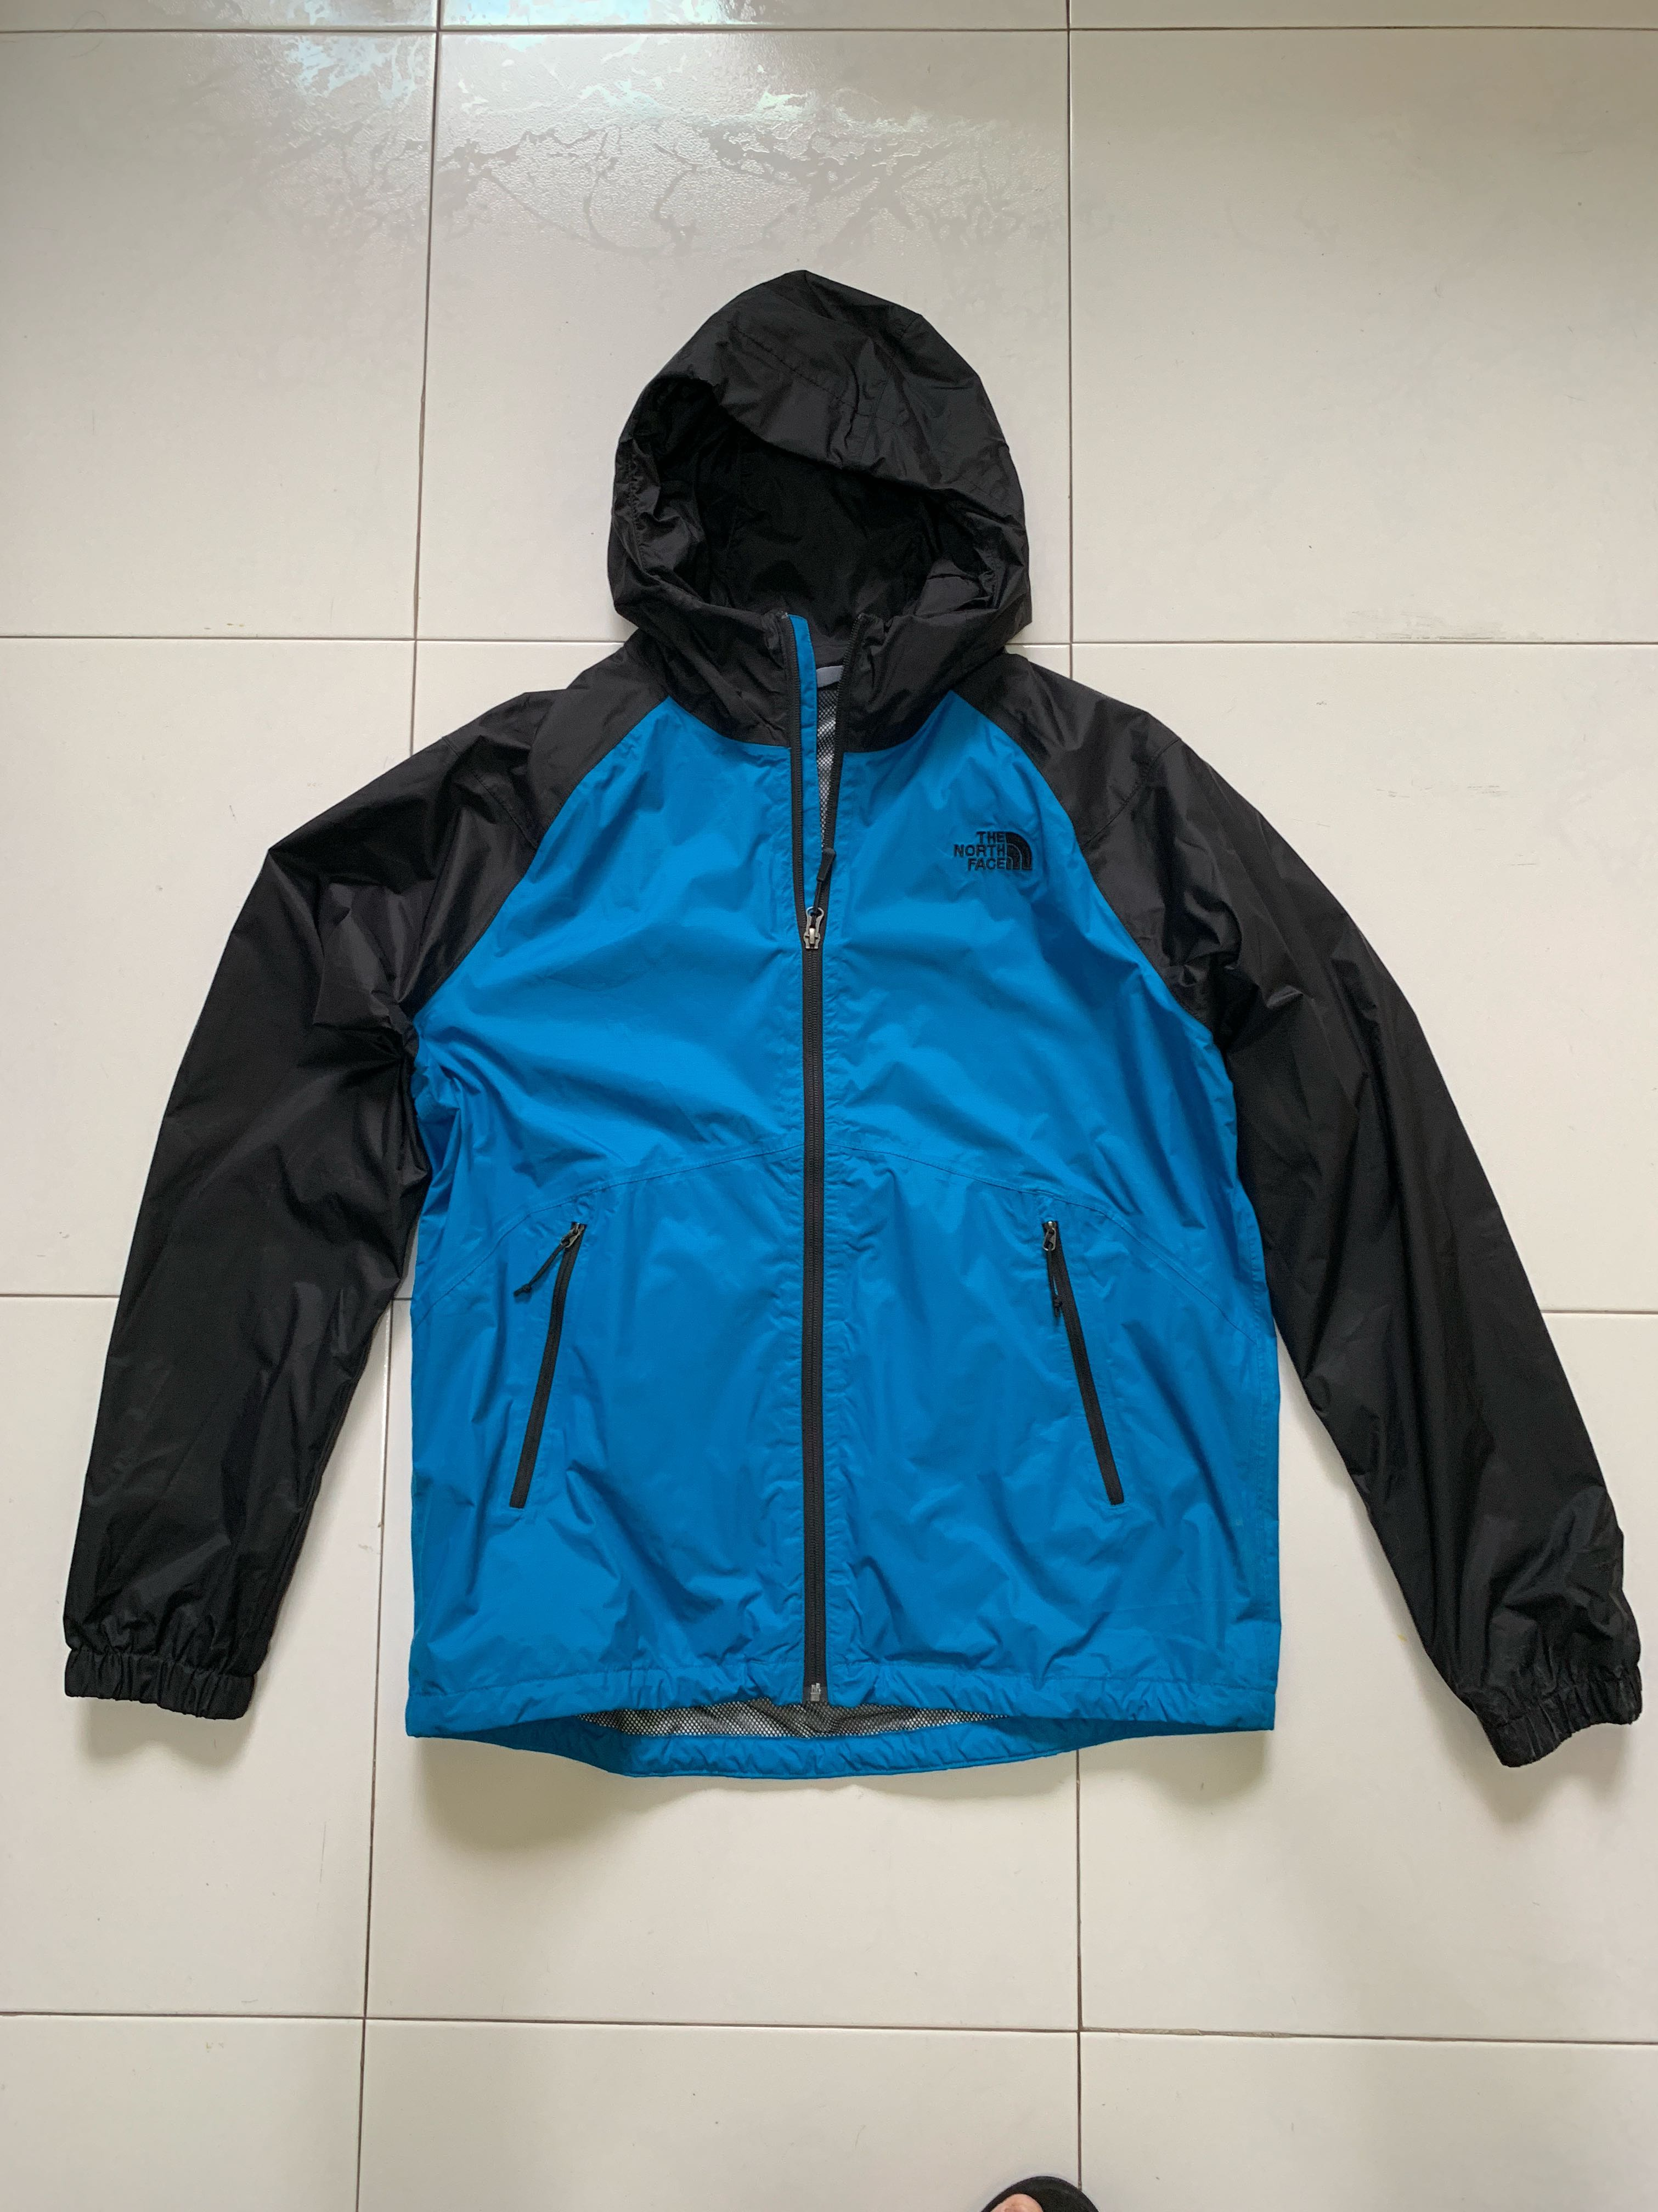 c740e563c Northface jacket